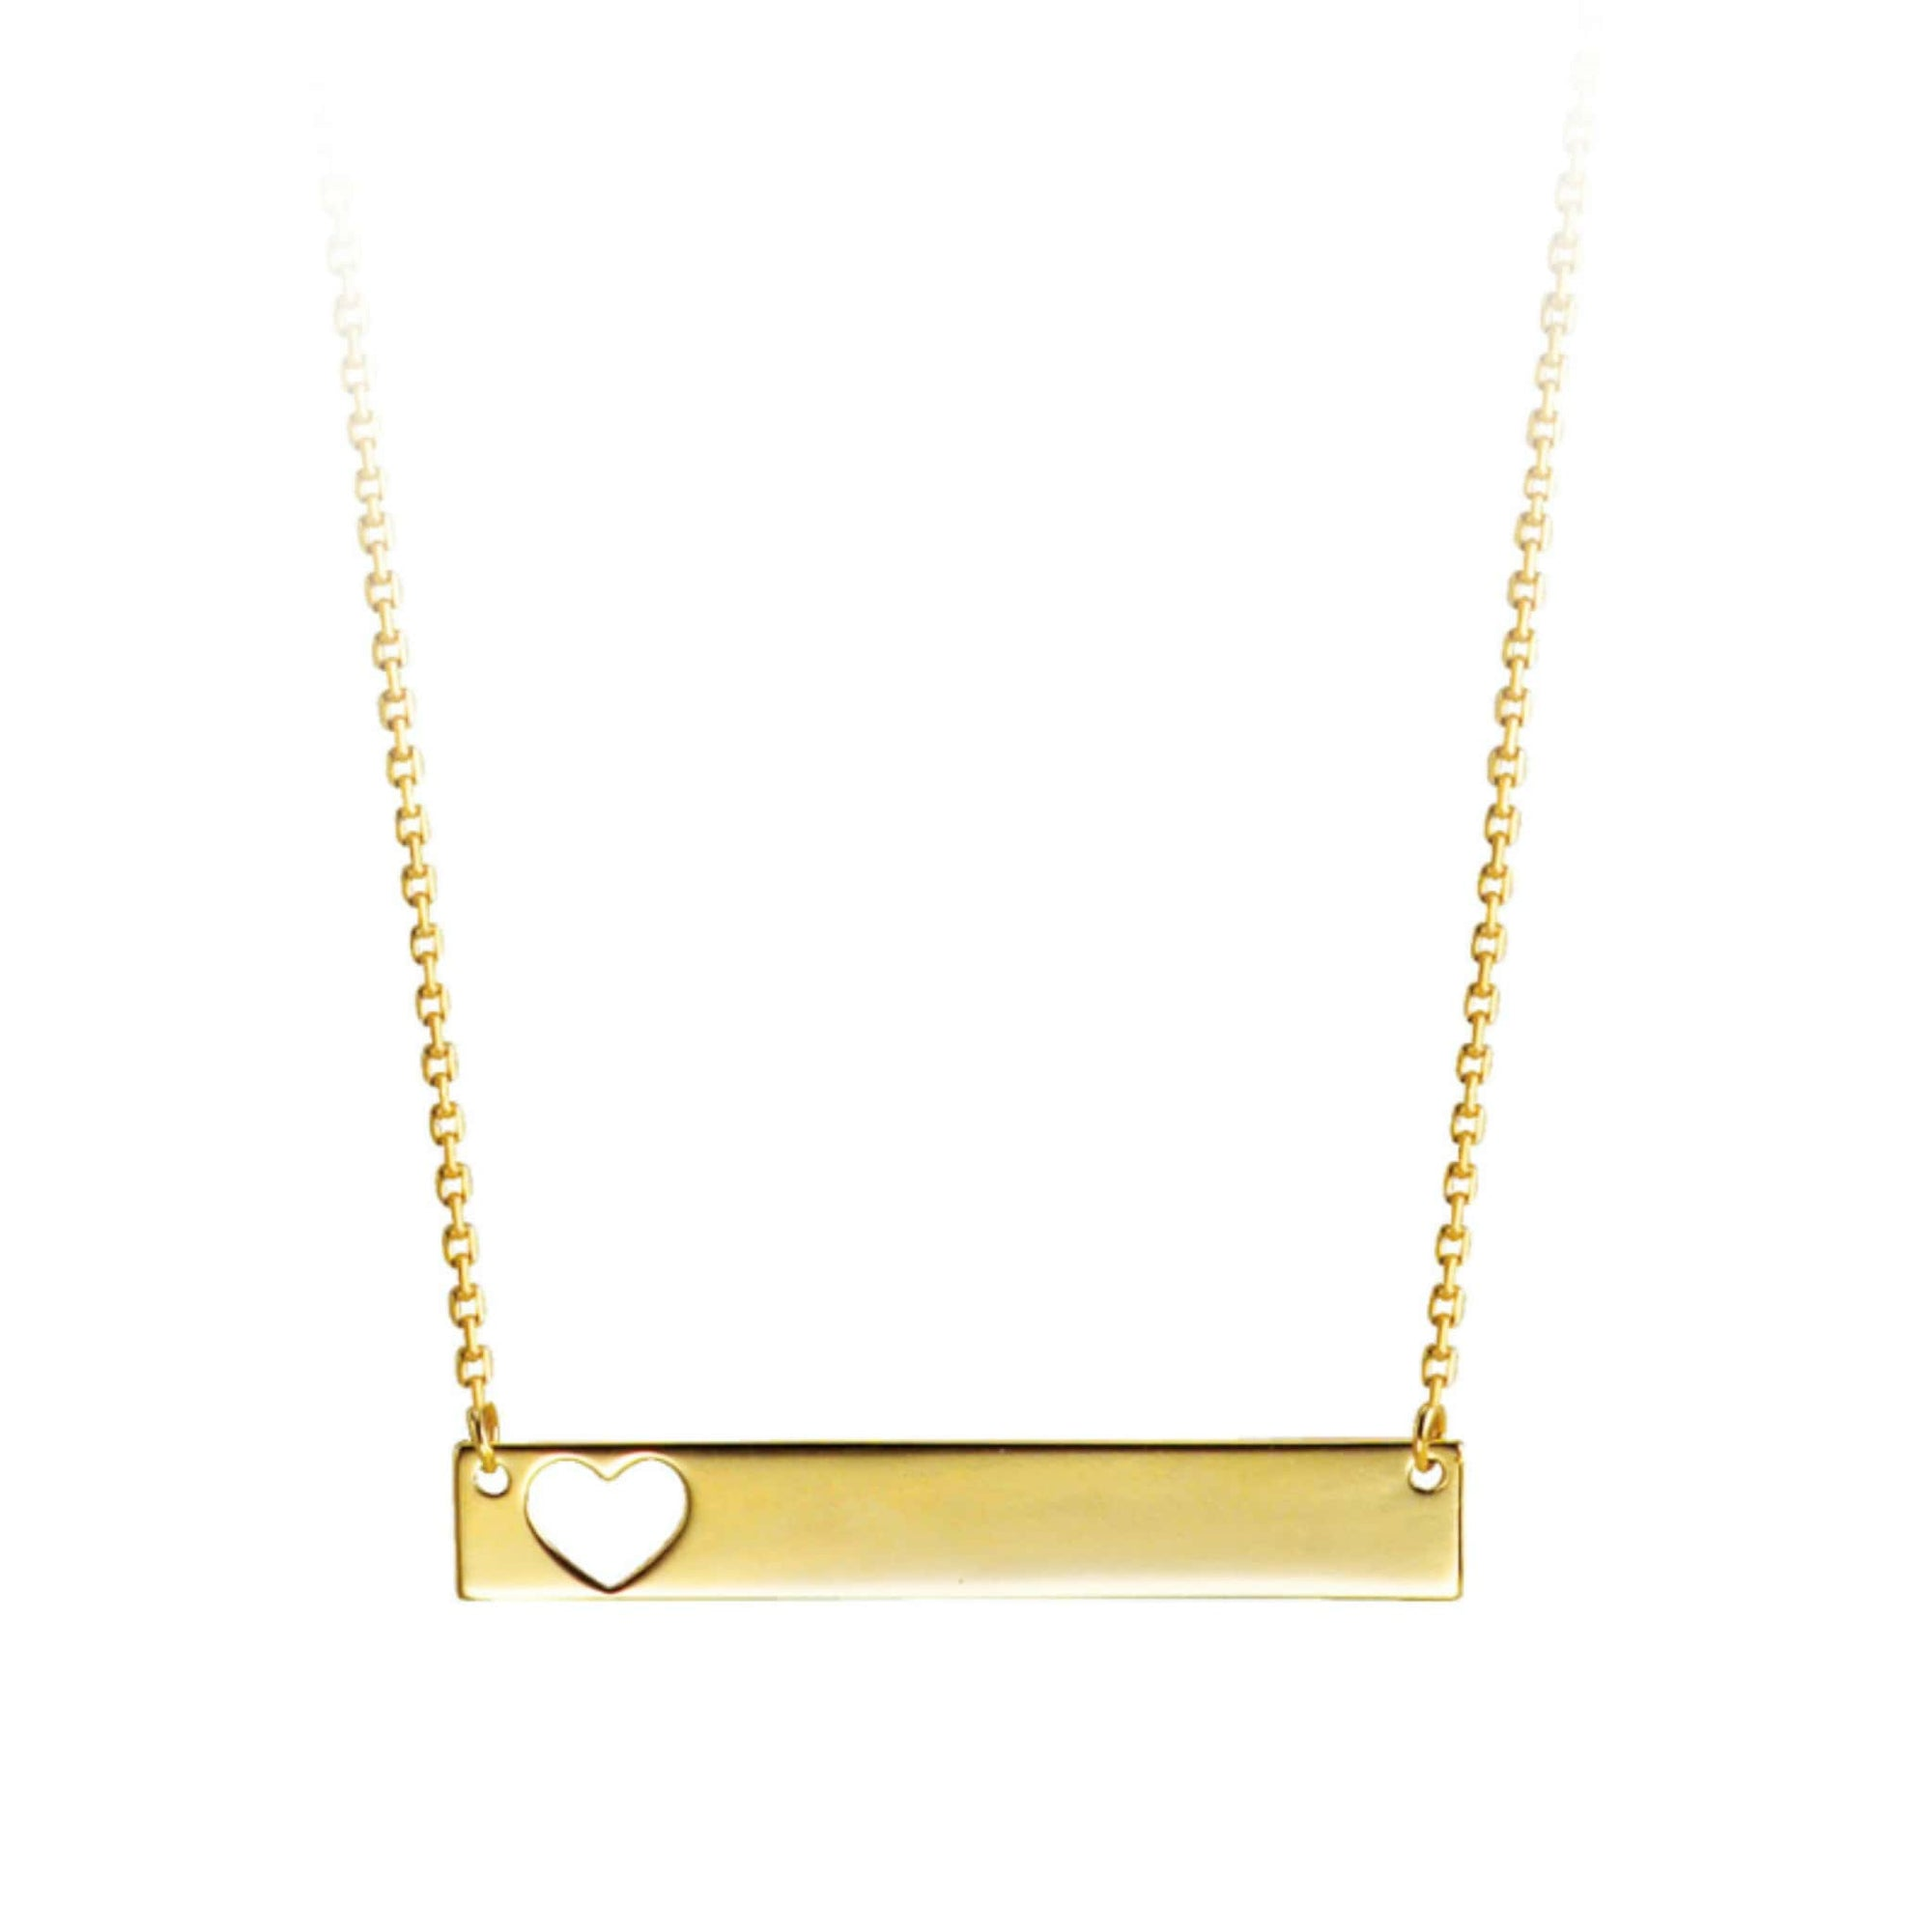 Bella 10K Yellow Gold Monogram Heart Necklace at Arman's Jewellers Kitchener